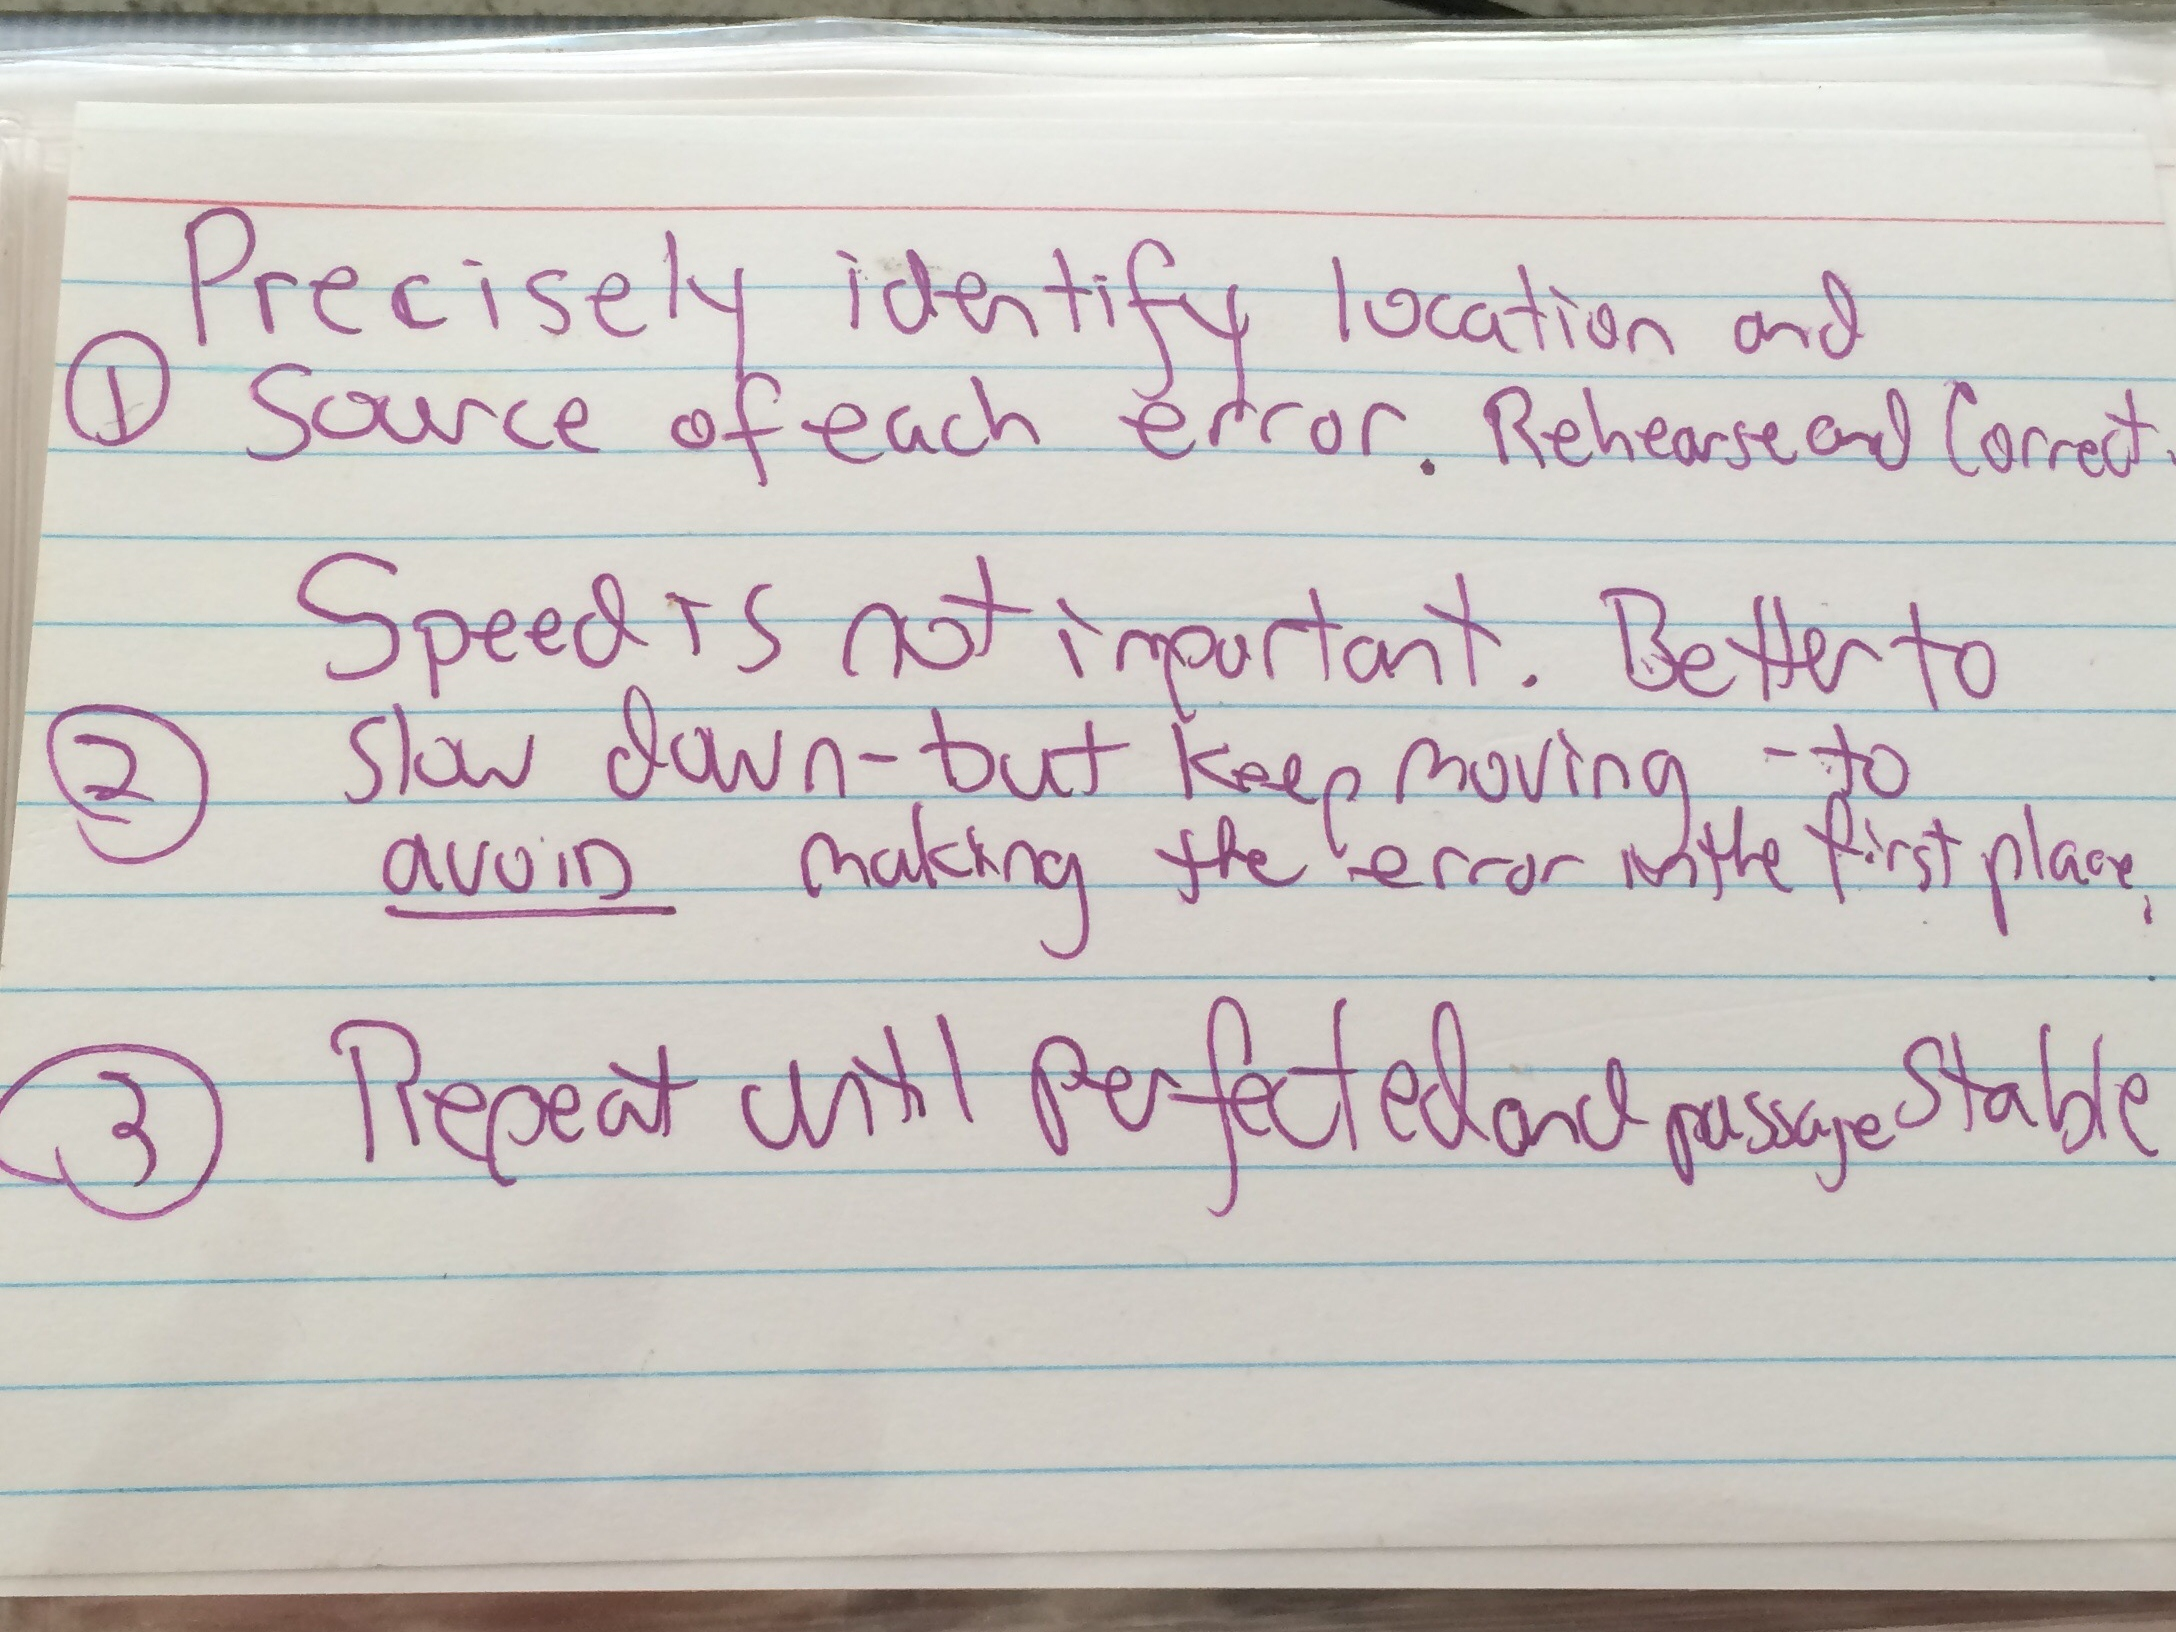 Precisely identify location and source of each error.  Rehearse and correct.  Speed is not important.  Better to slow down - but keep moving - to AVOID making the error in the first place.  Repeat until Perfect and passage stable.